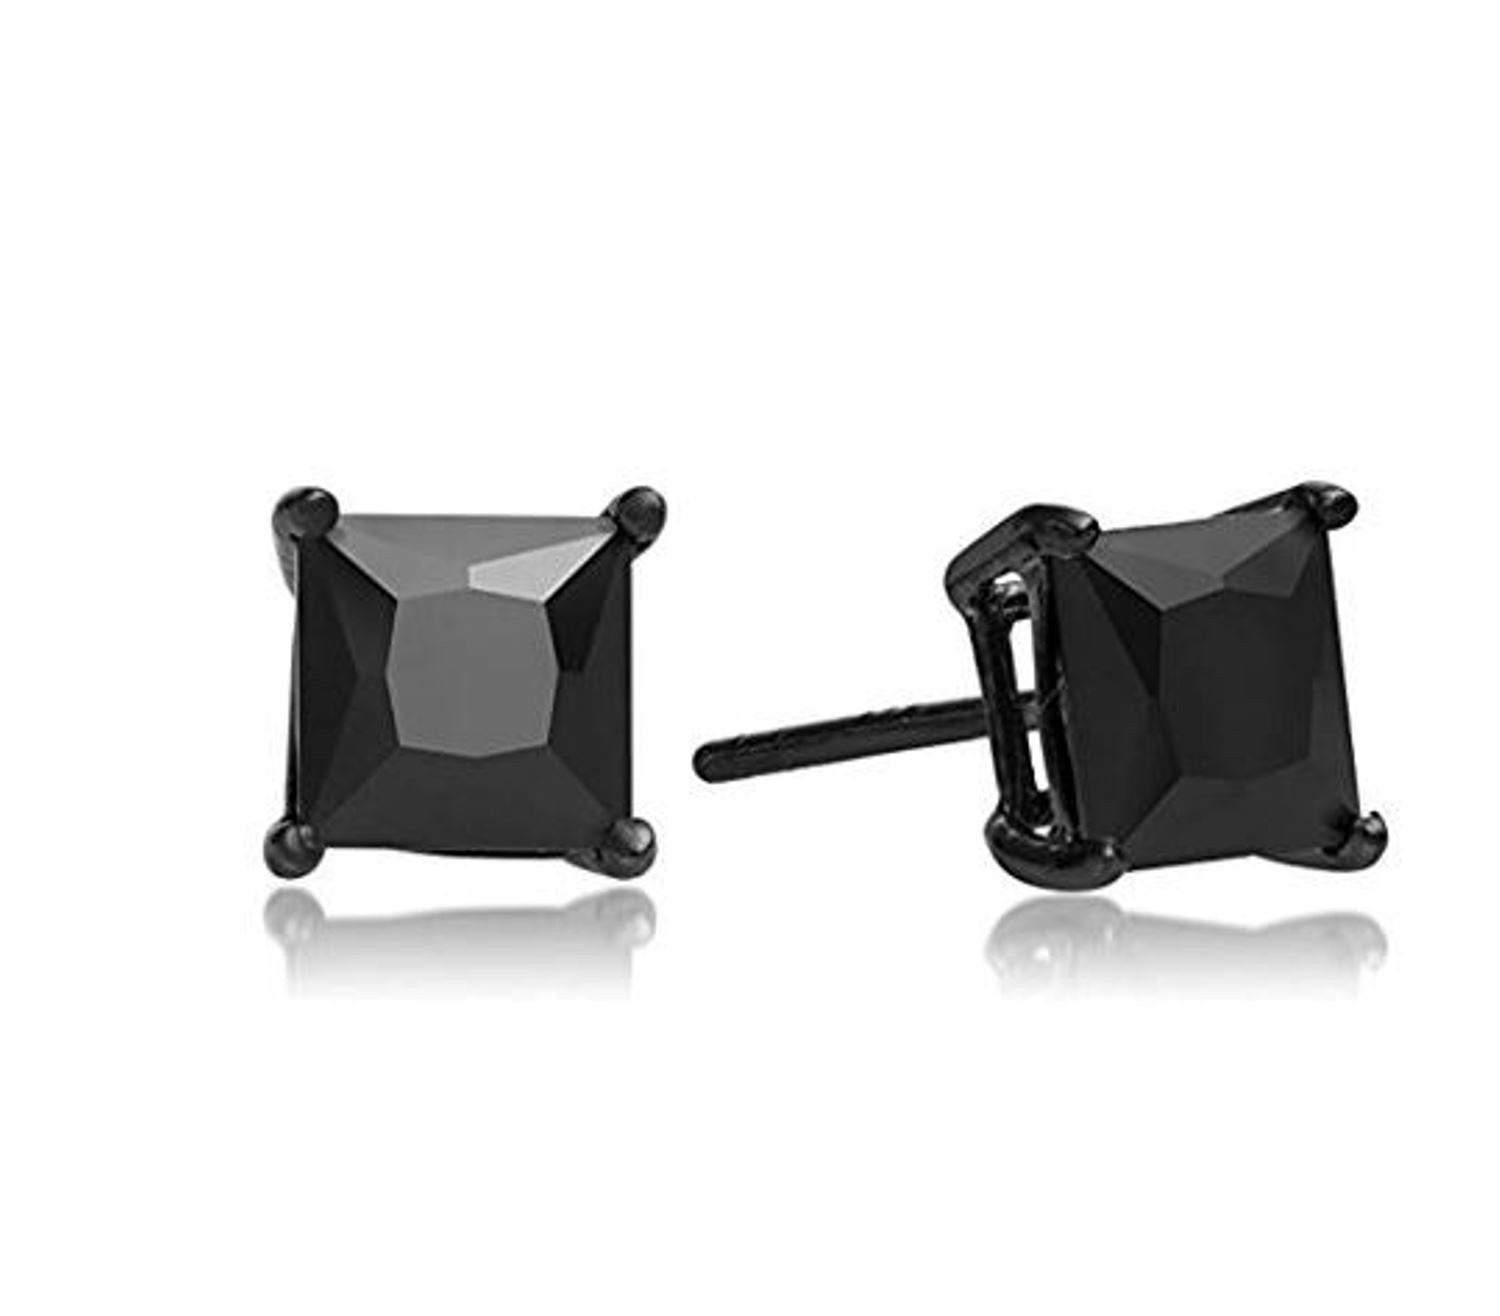 Surgical Stainless Steel Studs Earrings Men, Women, Girls, Boys BLACK Square Princess Cut Basket Setting BLACK Cubic Zirconia Hypoallergenic Earrings WITH A FREE GIFT BLACK ROUND STUDS EARRINGS (8MM)